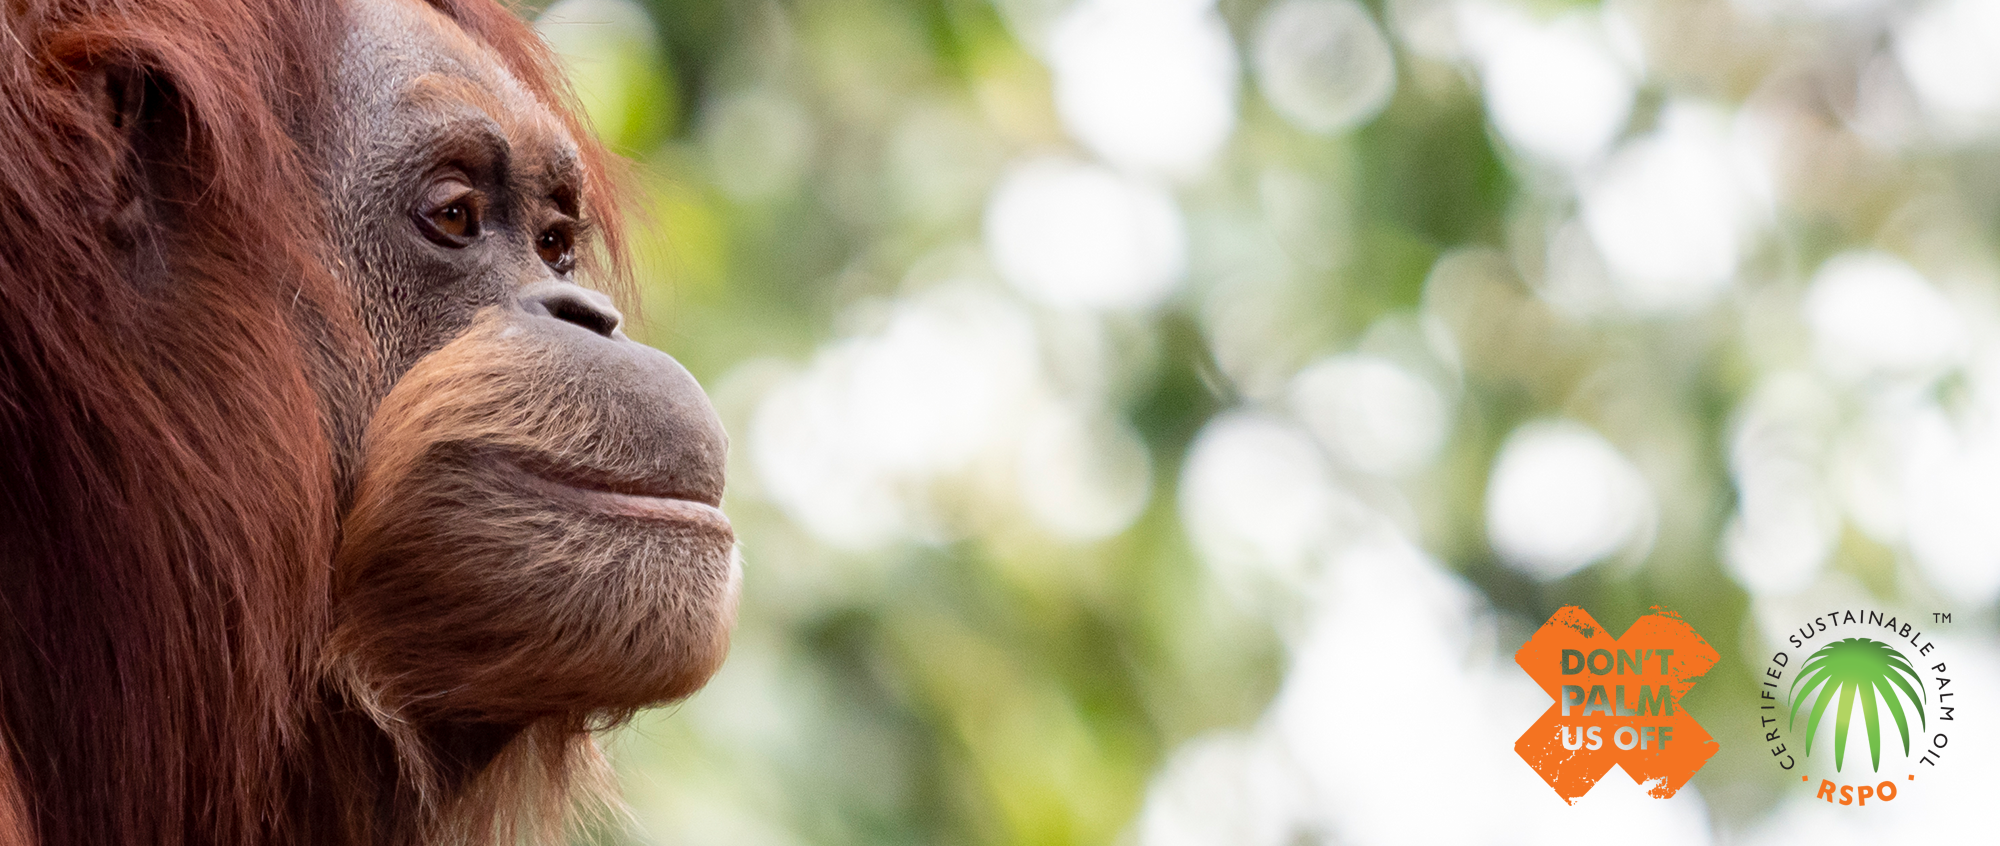 Dont Palm Us Off campaign sign with image of Orang-Utan face looking towards the right.